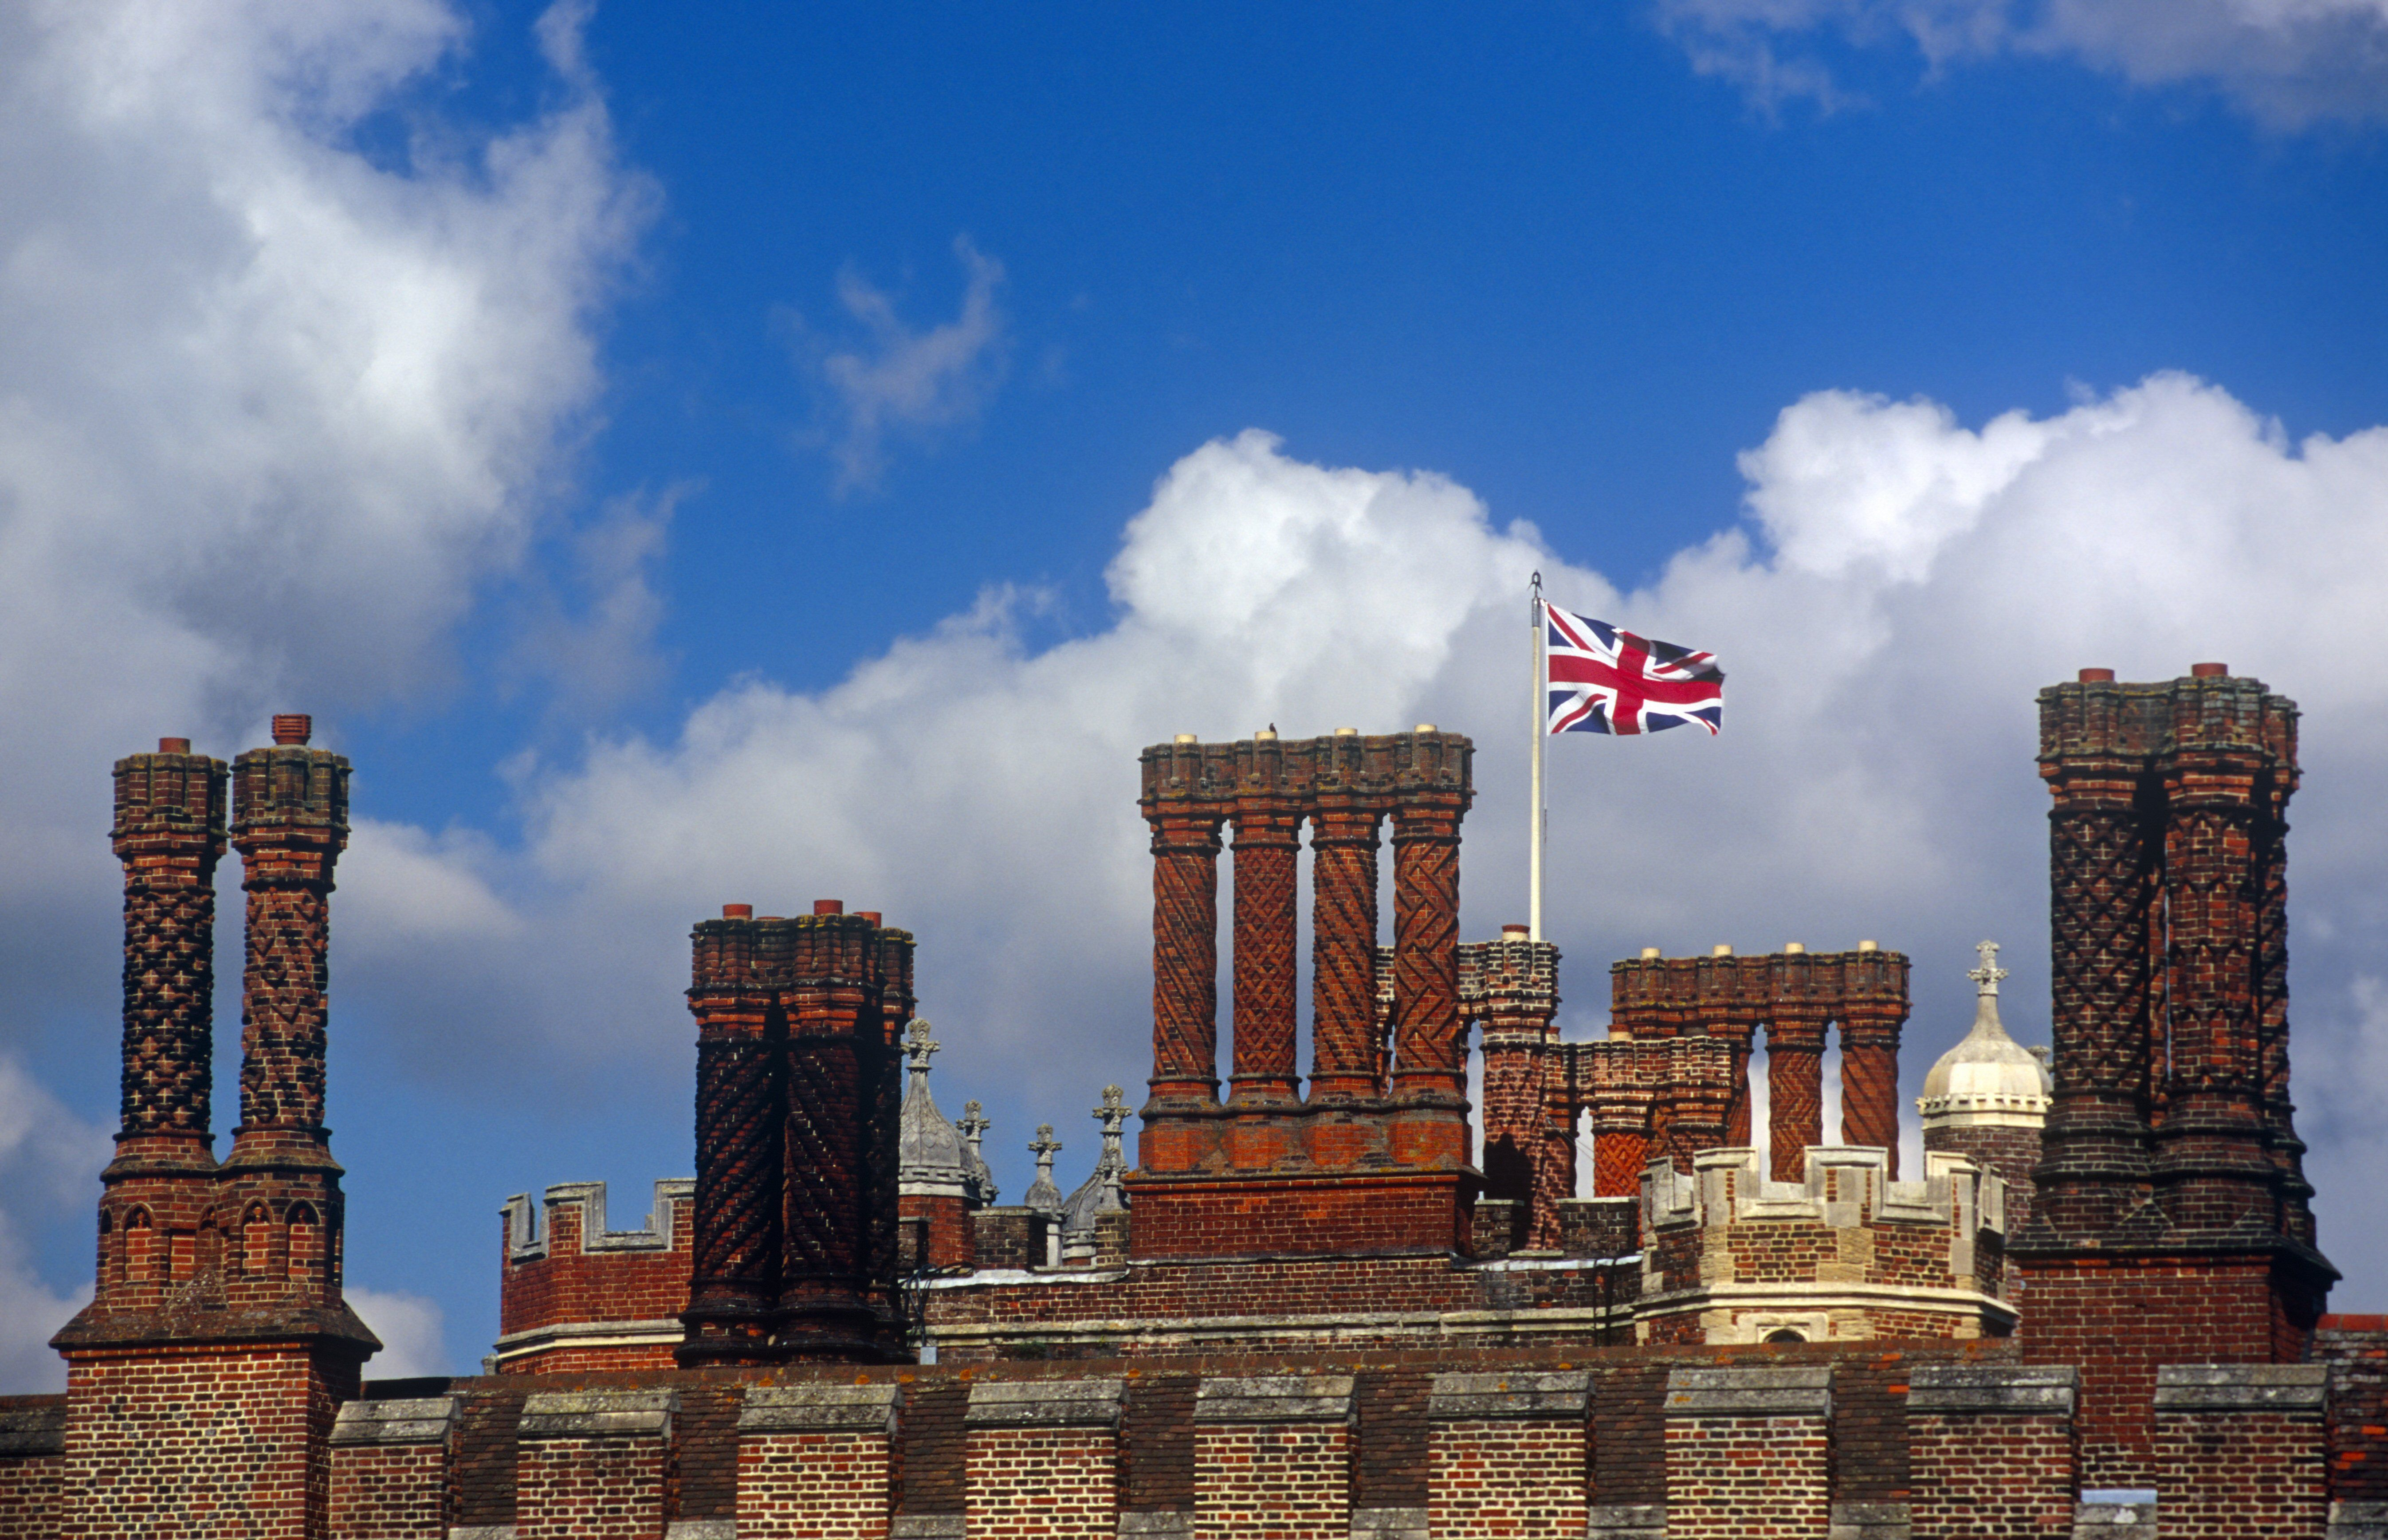 tall, ornate chimney extensions looking like carved pipes next to a Union Jack British flag